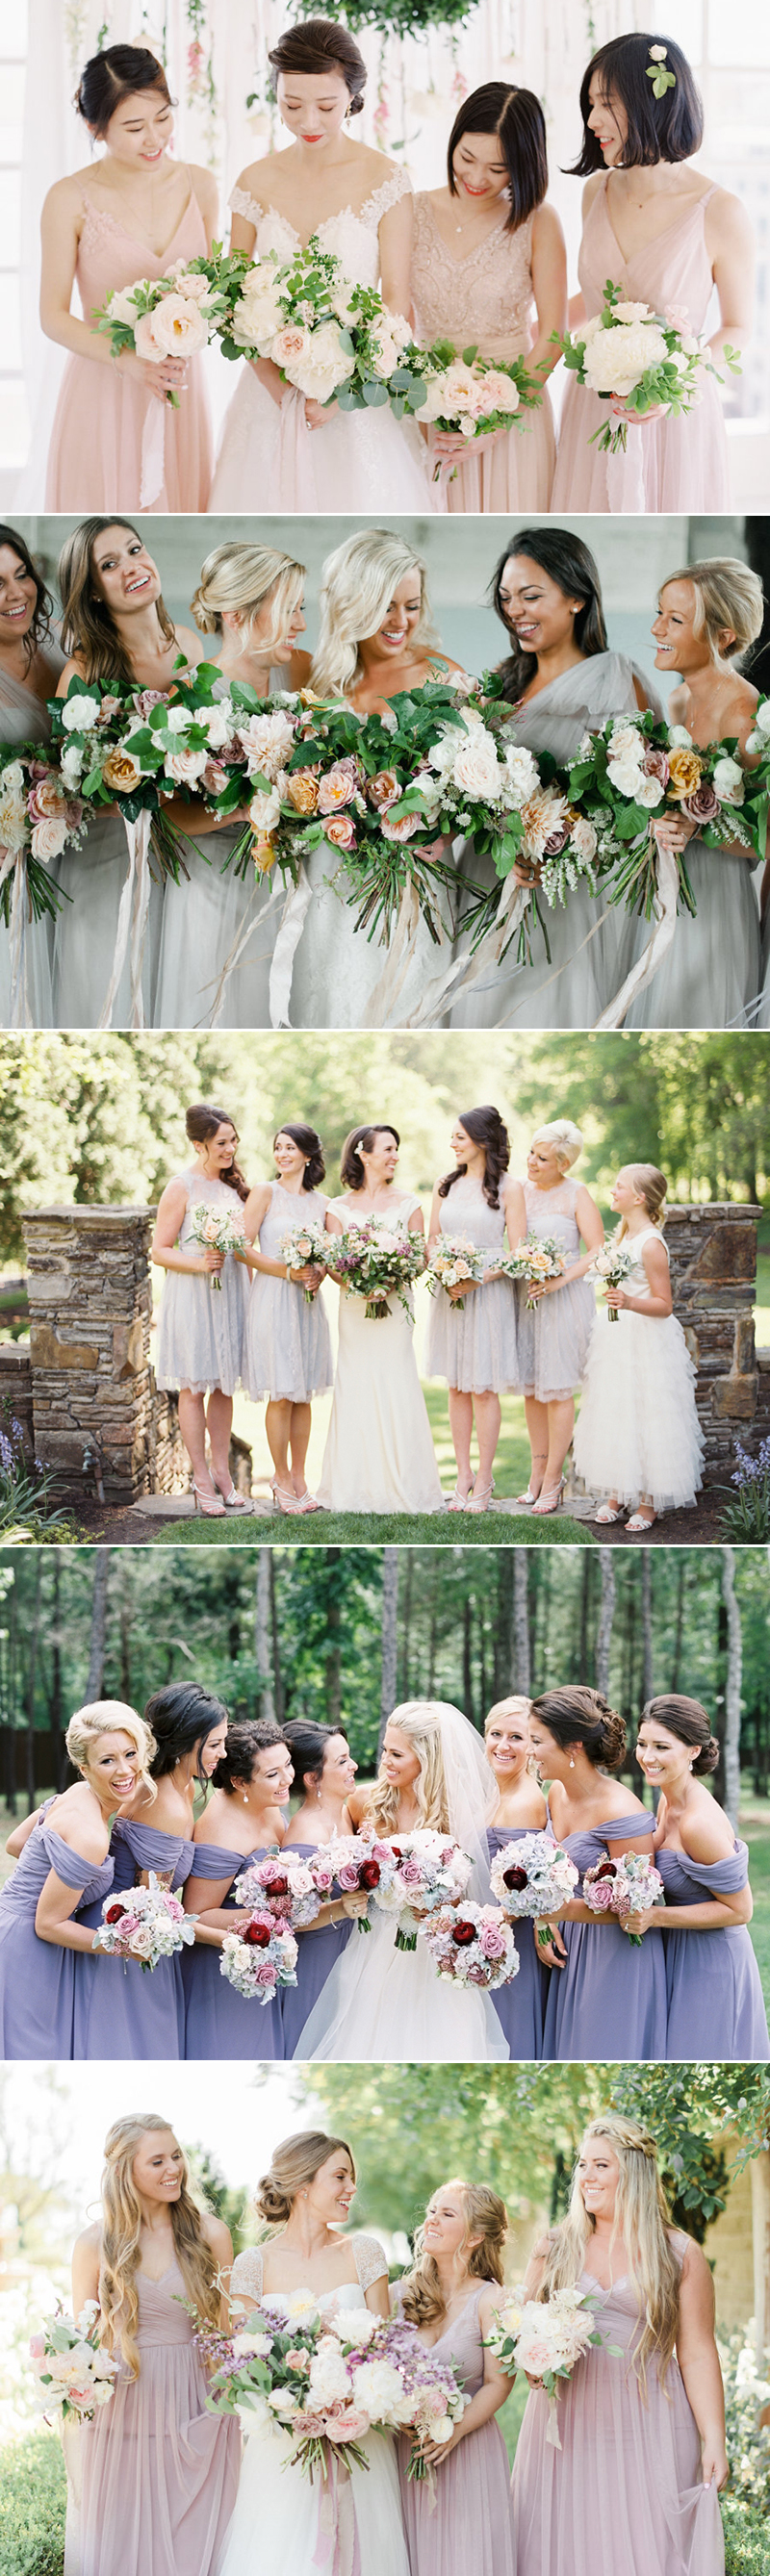 0006d3aa35 BHLDN is your one-stop shop for all things bridal and event. Brought to you  by Anthropologie